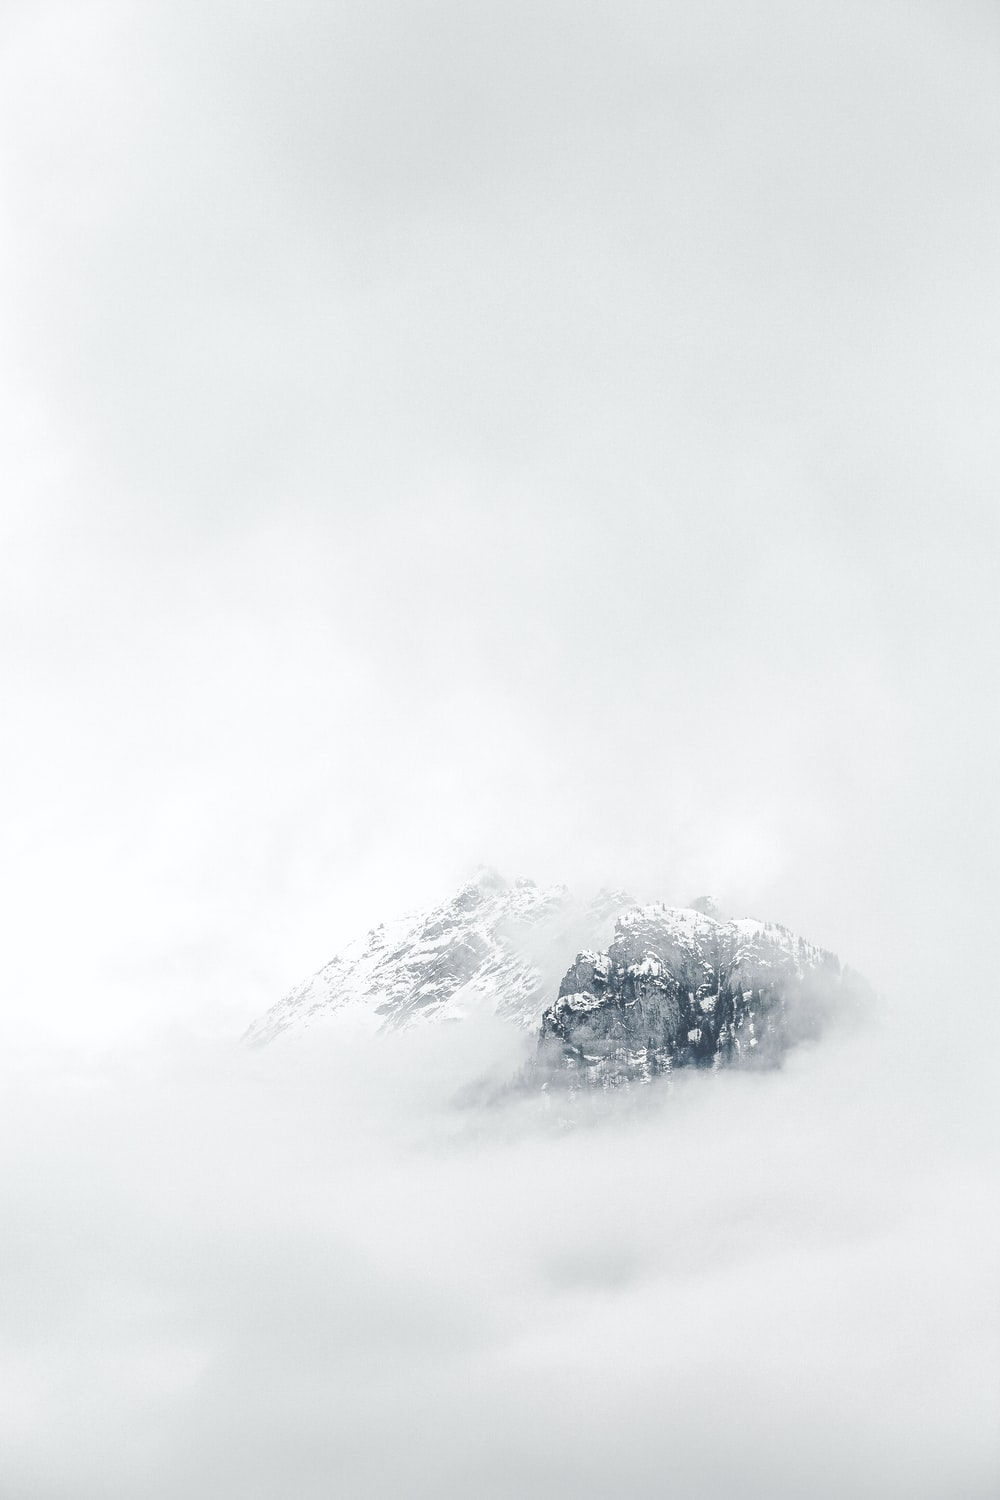 icy mountain scenery